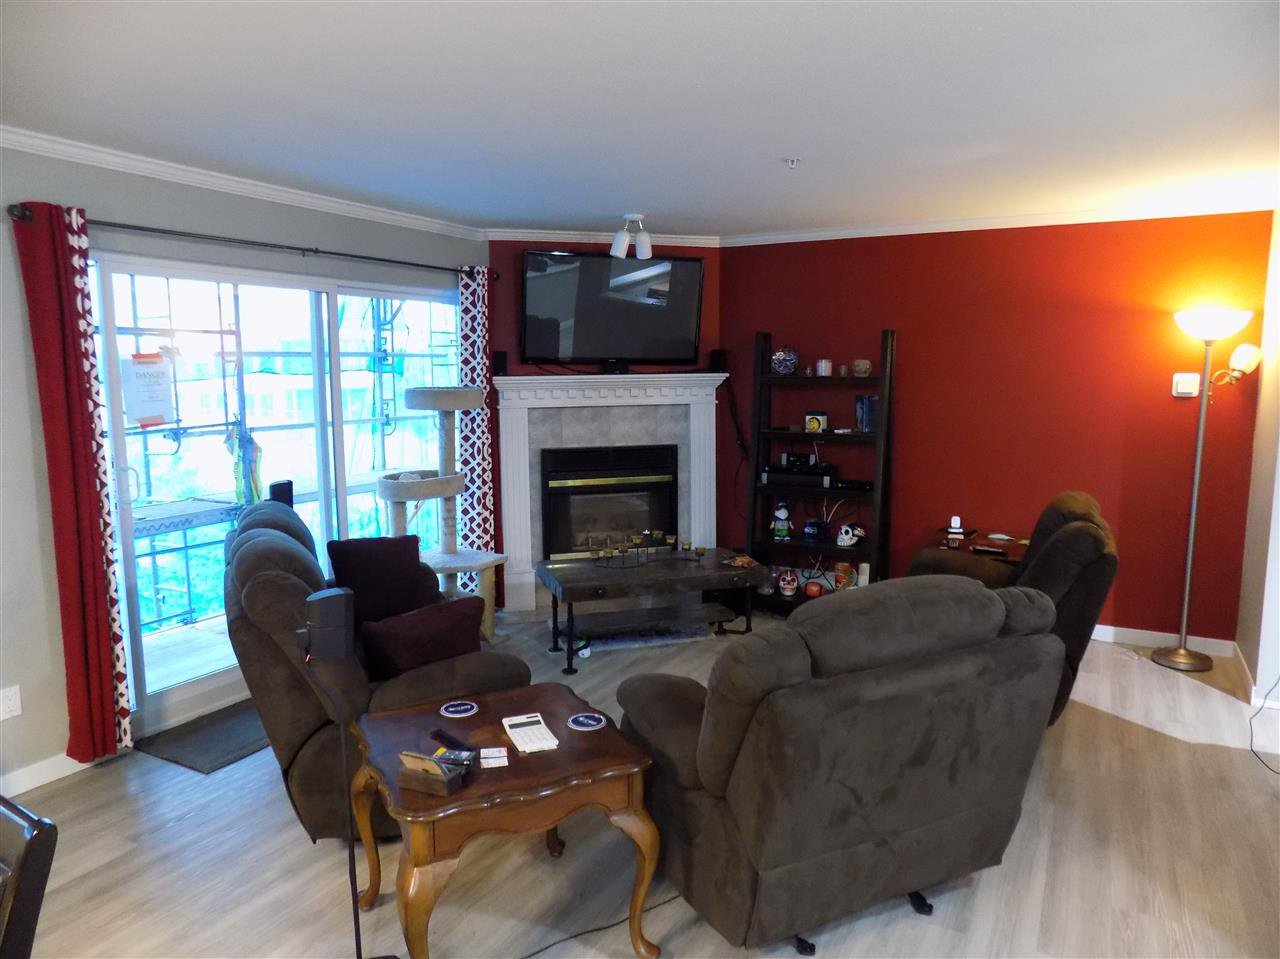 Photo 18: Photos: 311 32044 OLD YALE Road in Abbotsford: Abbotsford West Condo for sale : MLS®# R2331409